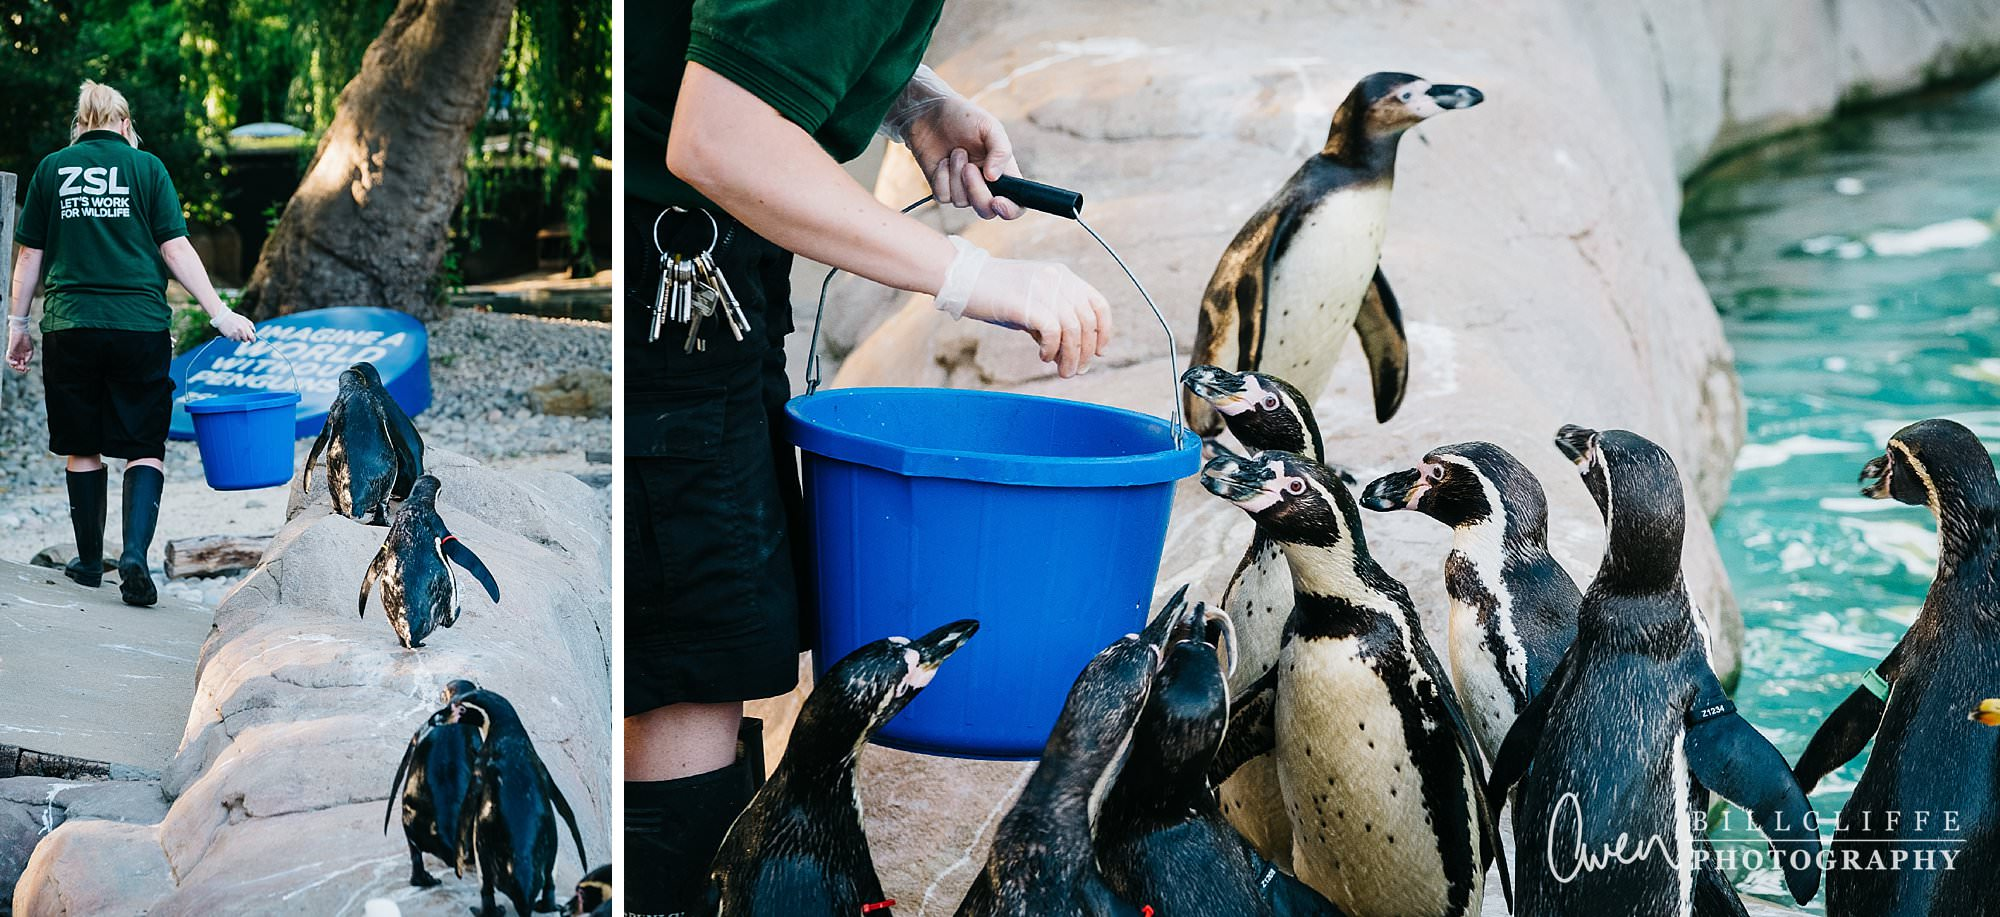 london event photographer zsl london zoo 1706 015 - A Party with the Penguins at London Zoo